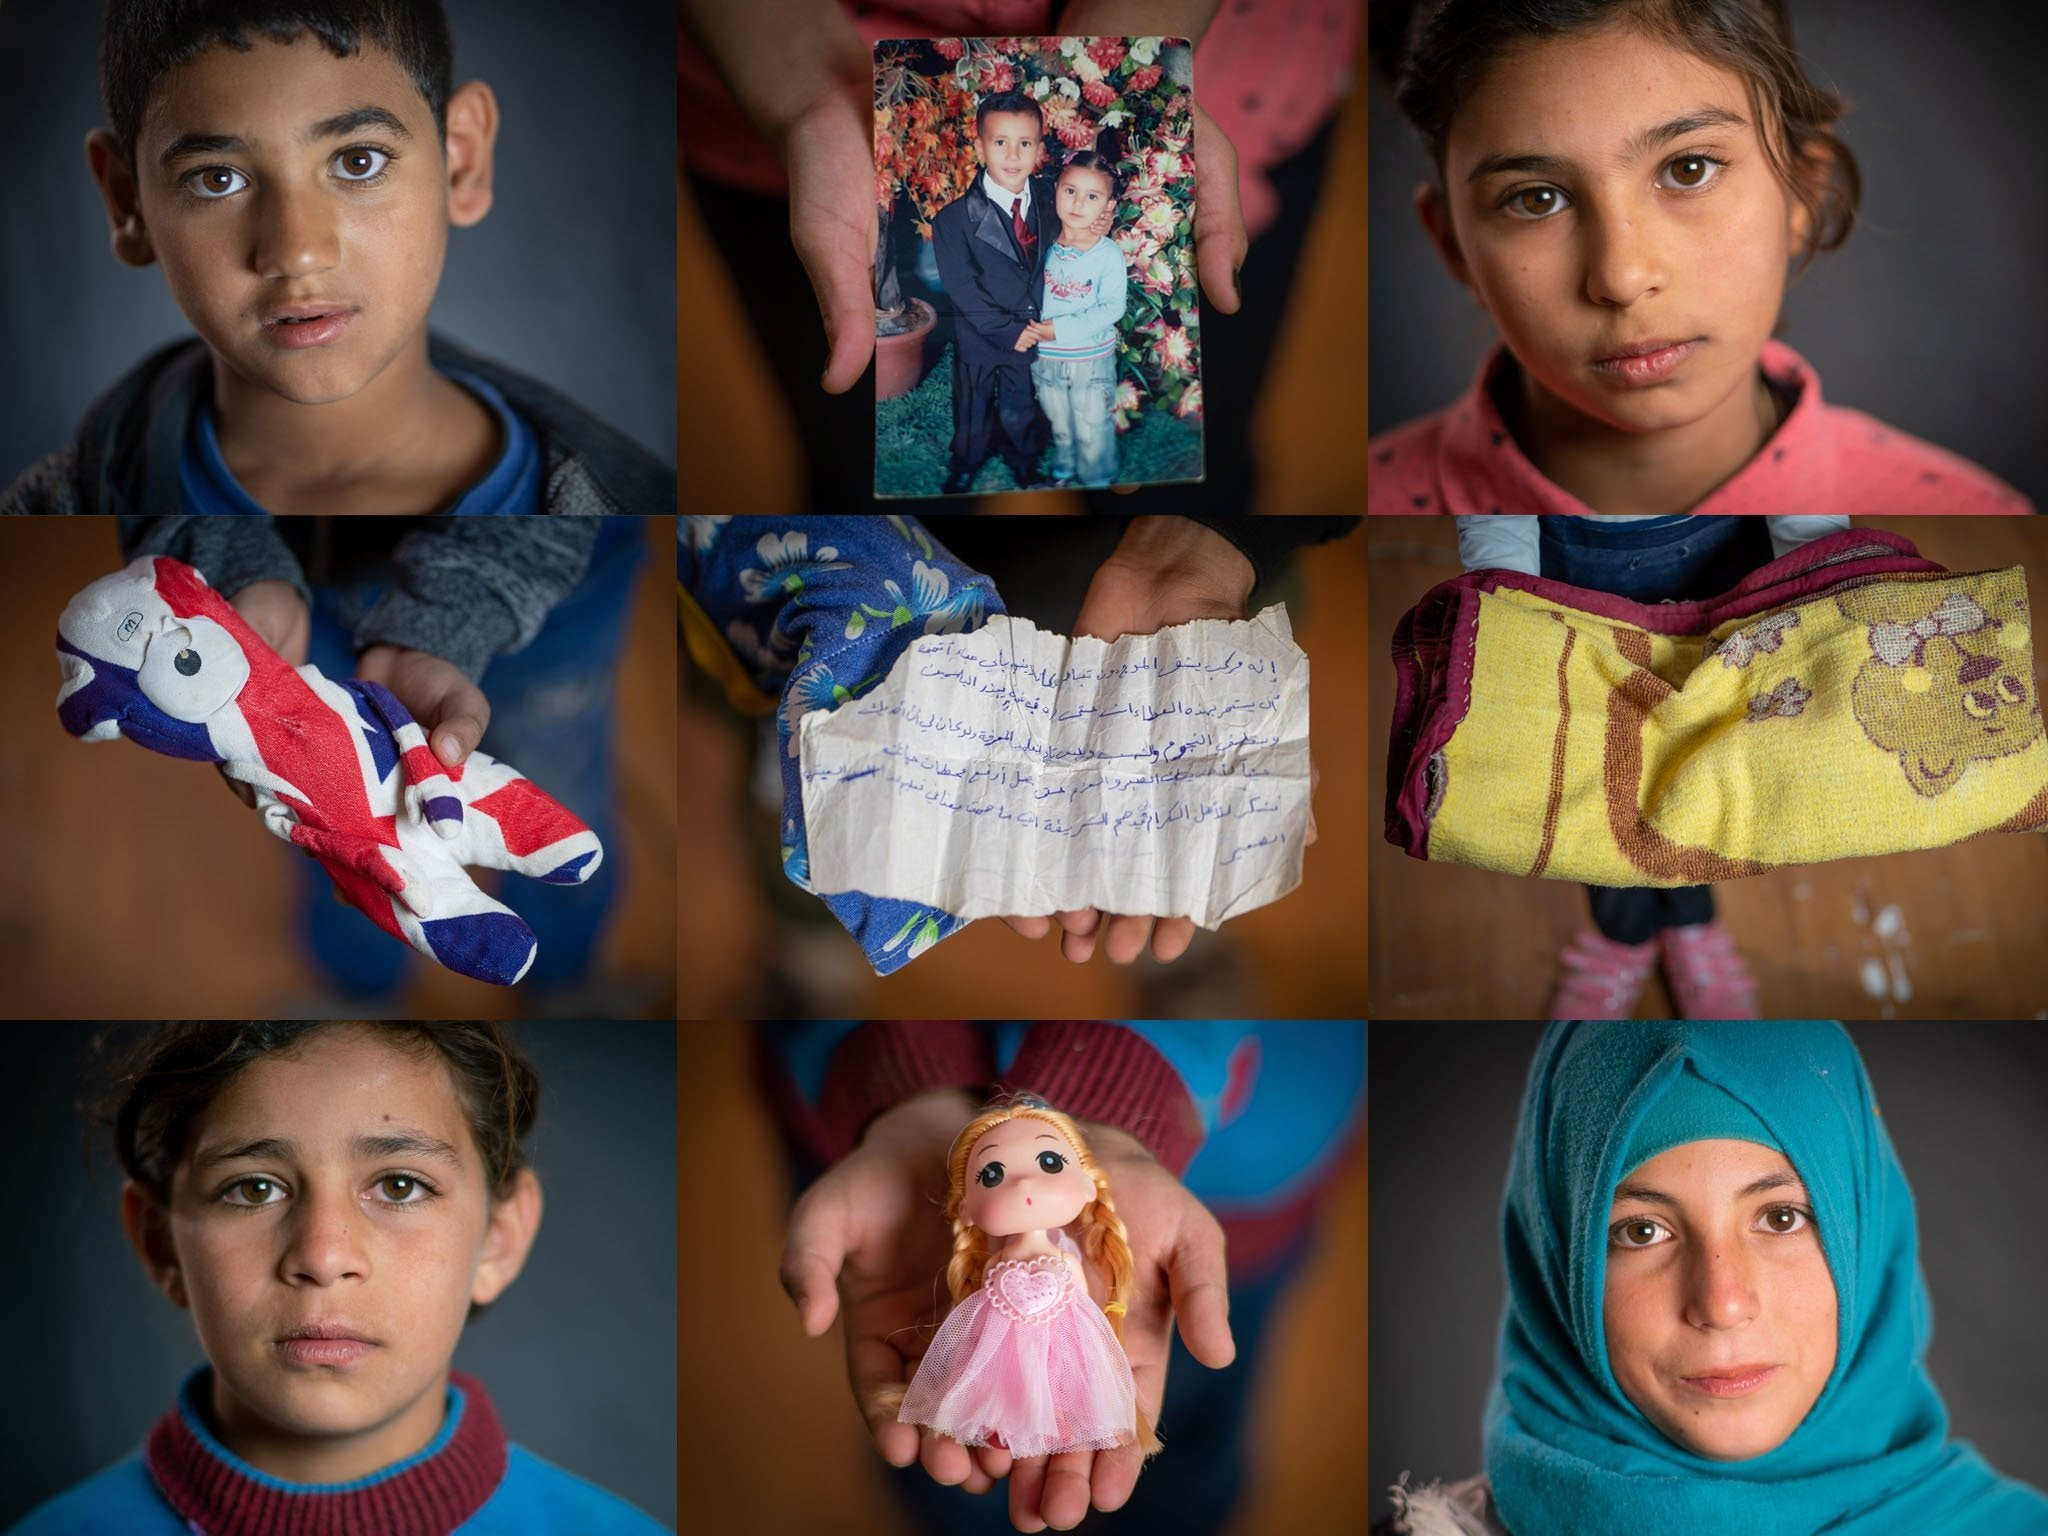 The precious objects bringing comfort to Syrian refugees